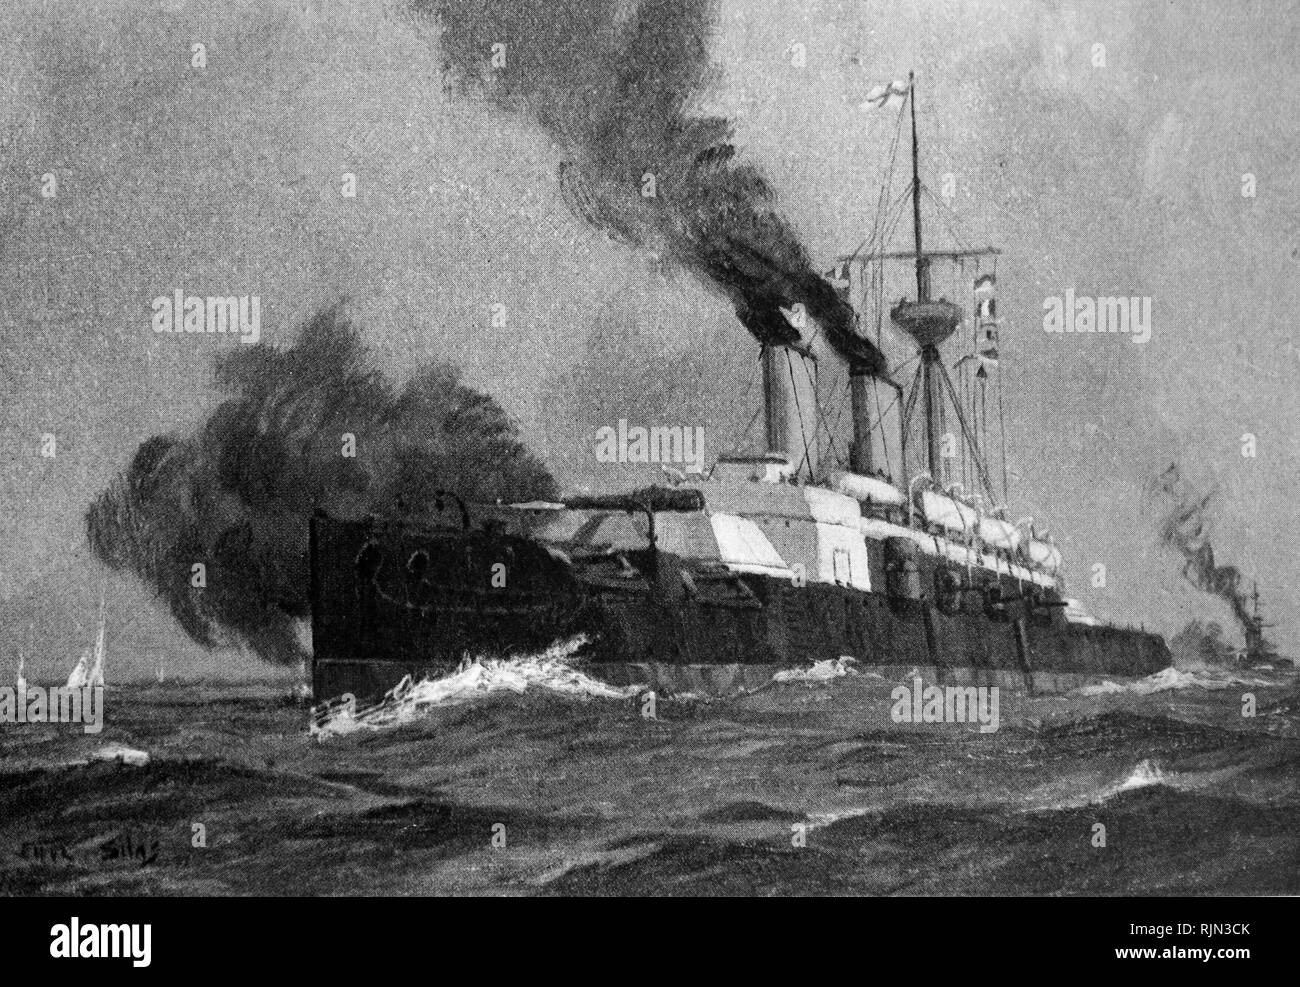 Illustration showing the Royal Navy ship 'Benbow' an ironclad warship. 1885 - Stock Image